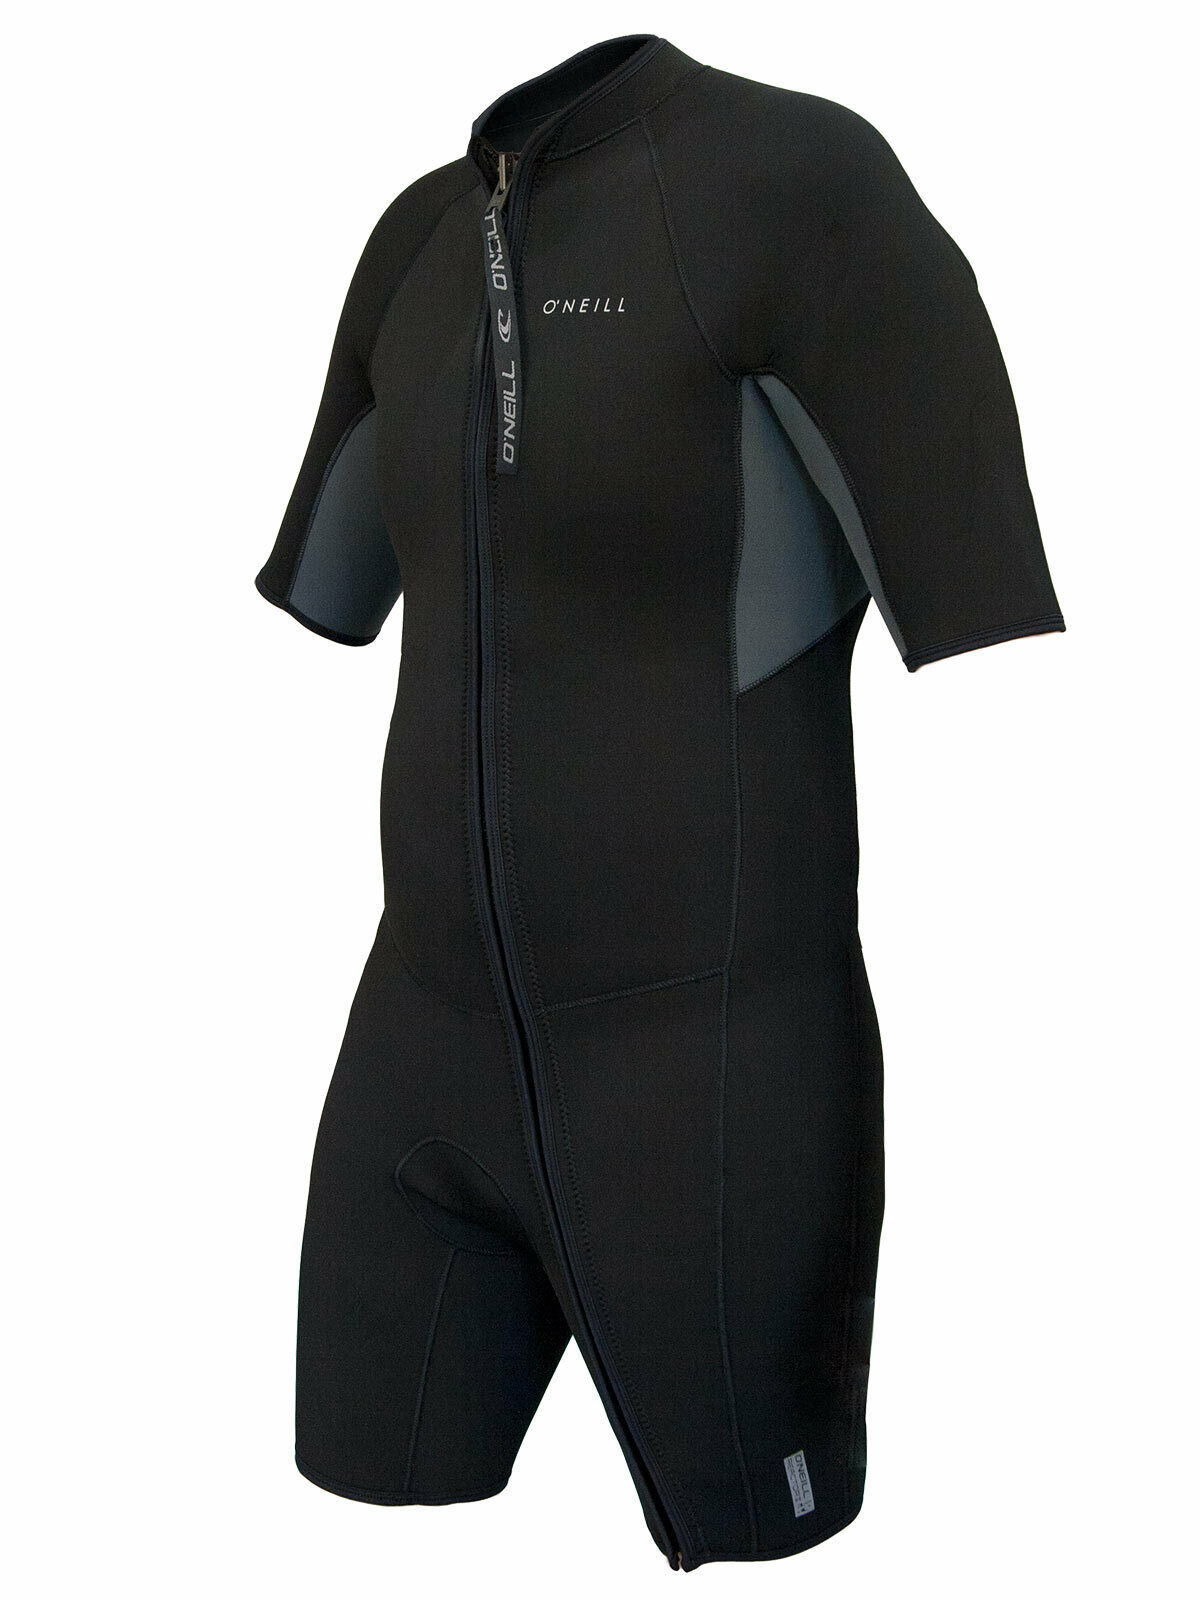 O'Neill Reactor-2 Mens Front Zip Shorty  3mm Neoprene Spring Wetsuit  order now